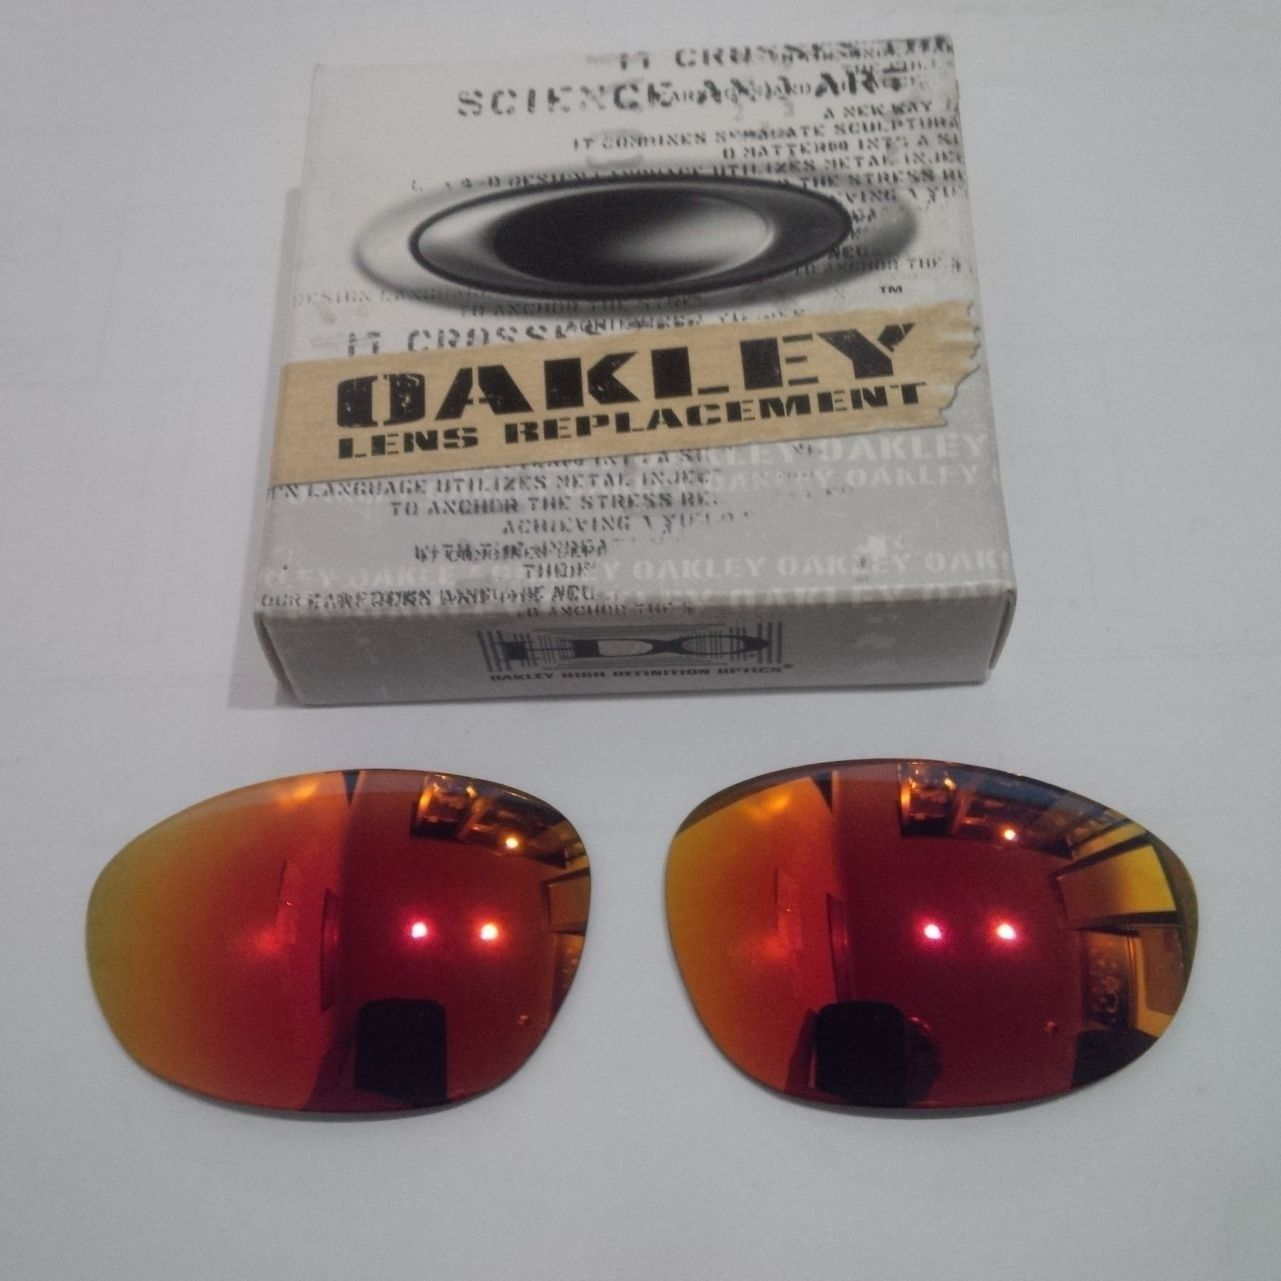 Custom cut replacement lens oakley donor for xmetals - IMG-20150709-WA0007.jpg